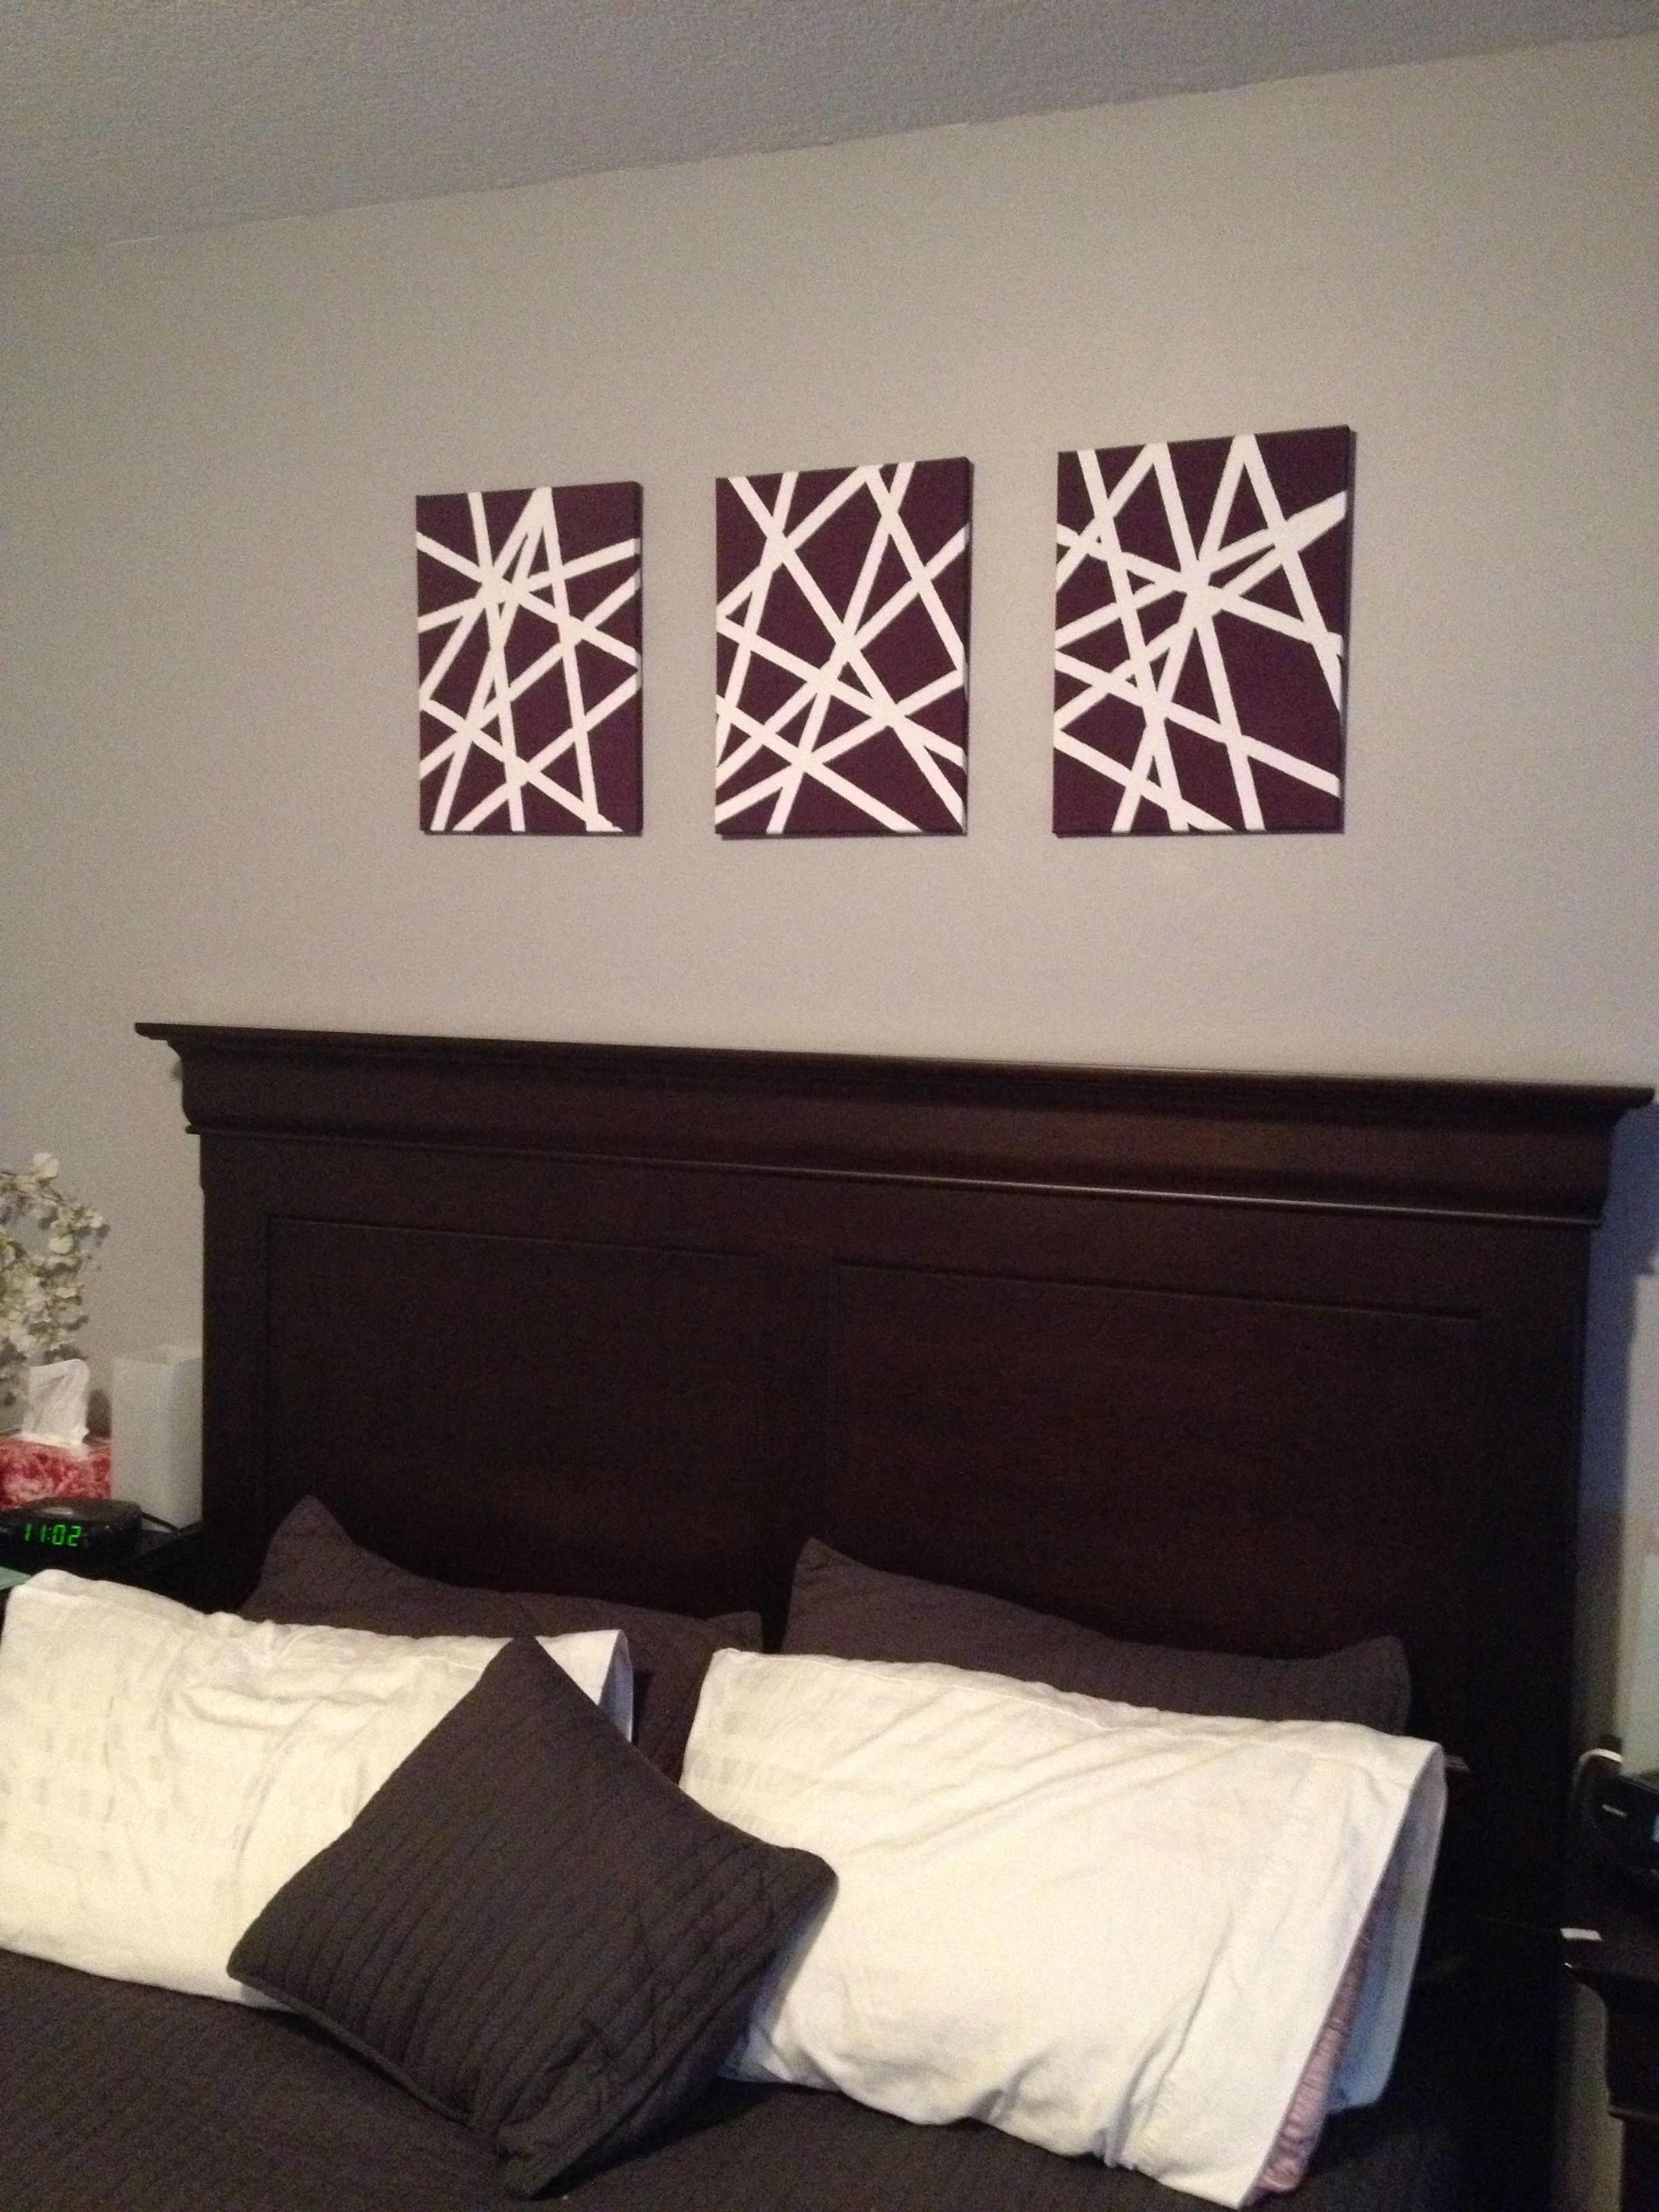 Canvas art all you need is three canvases dollar store